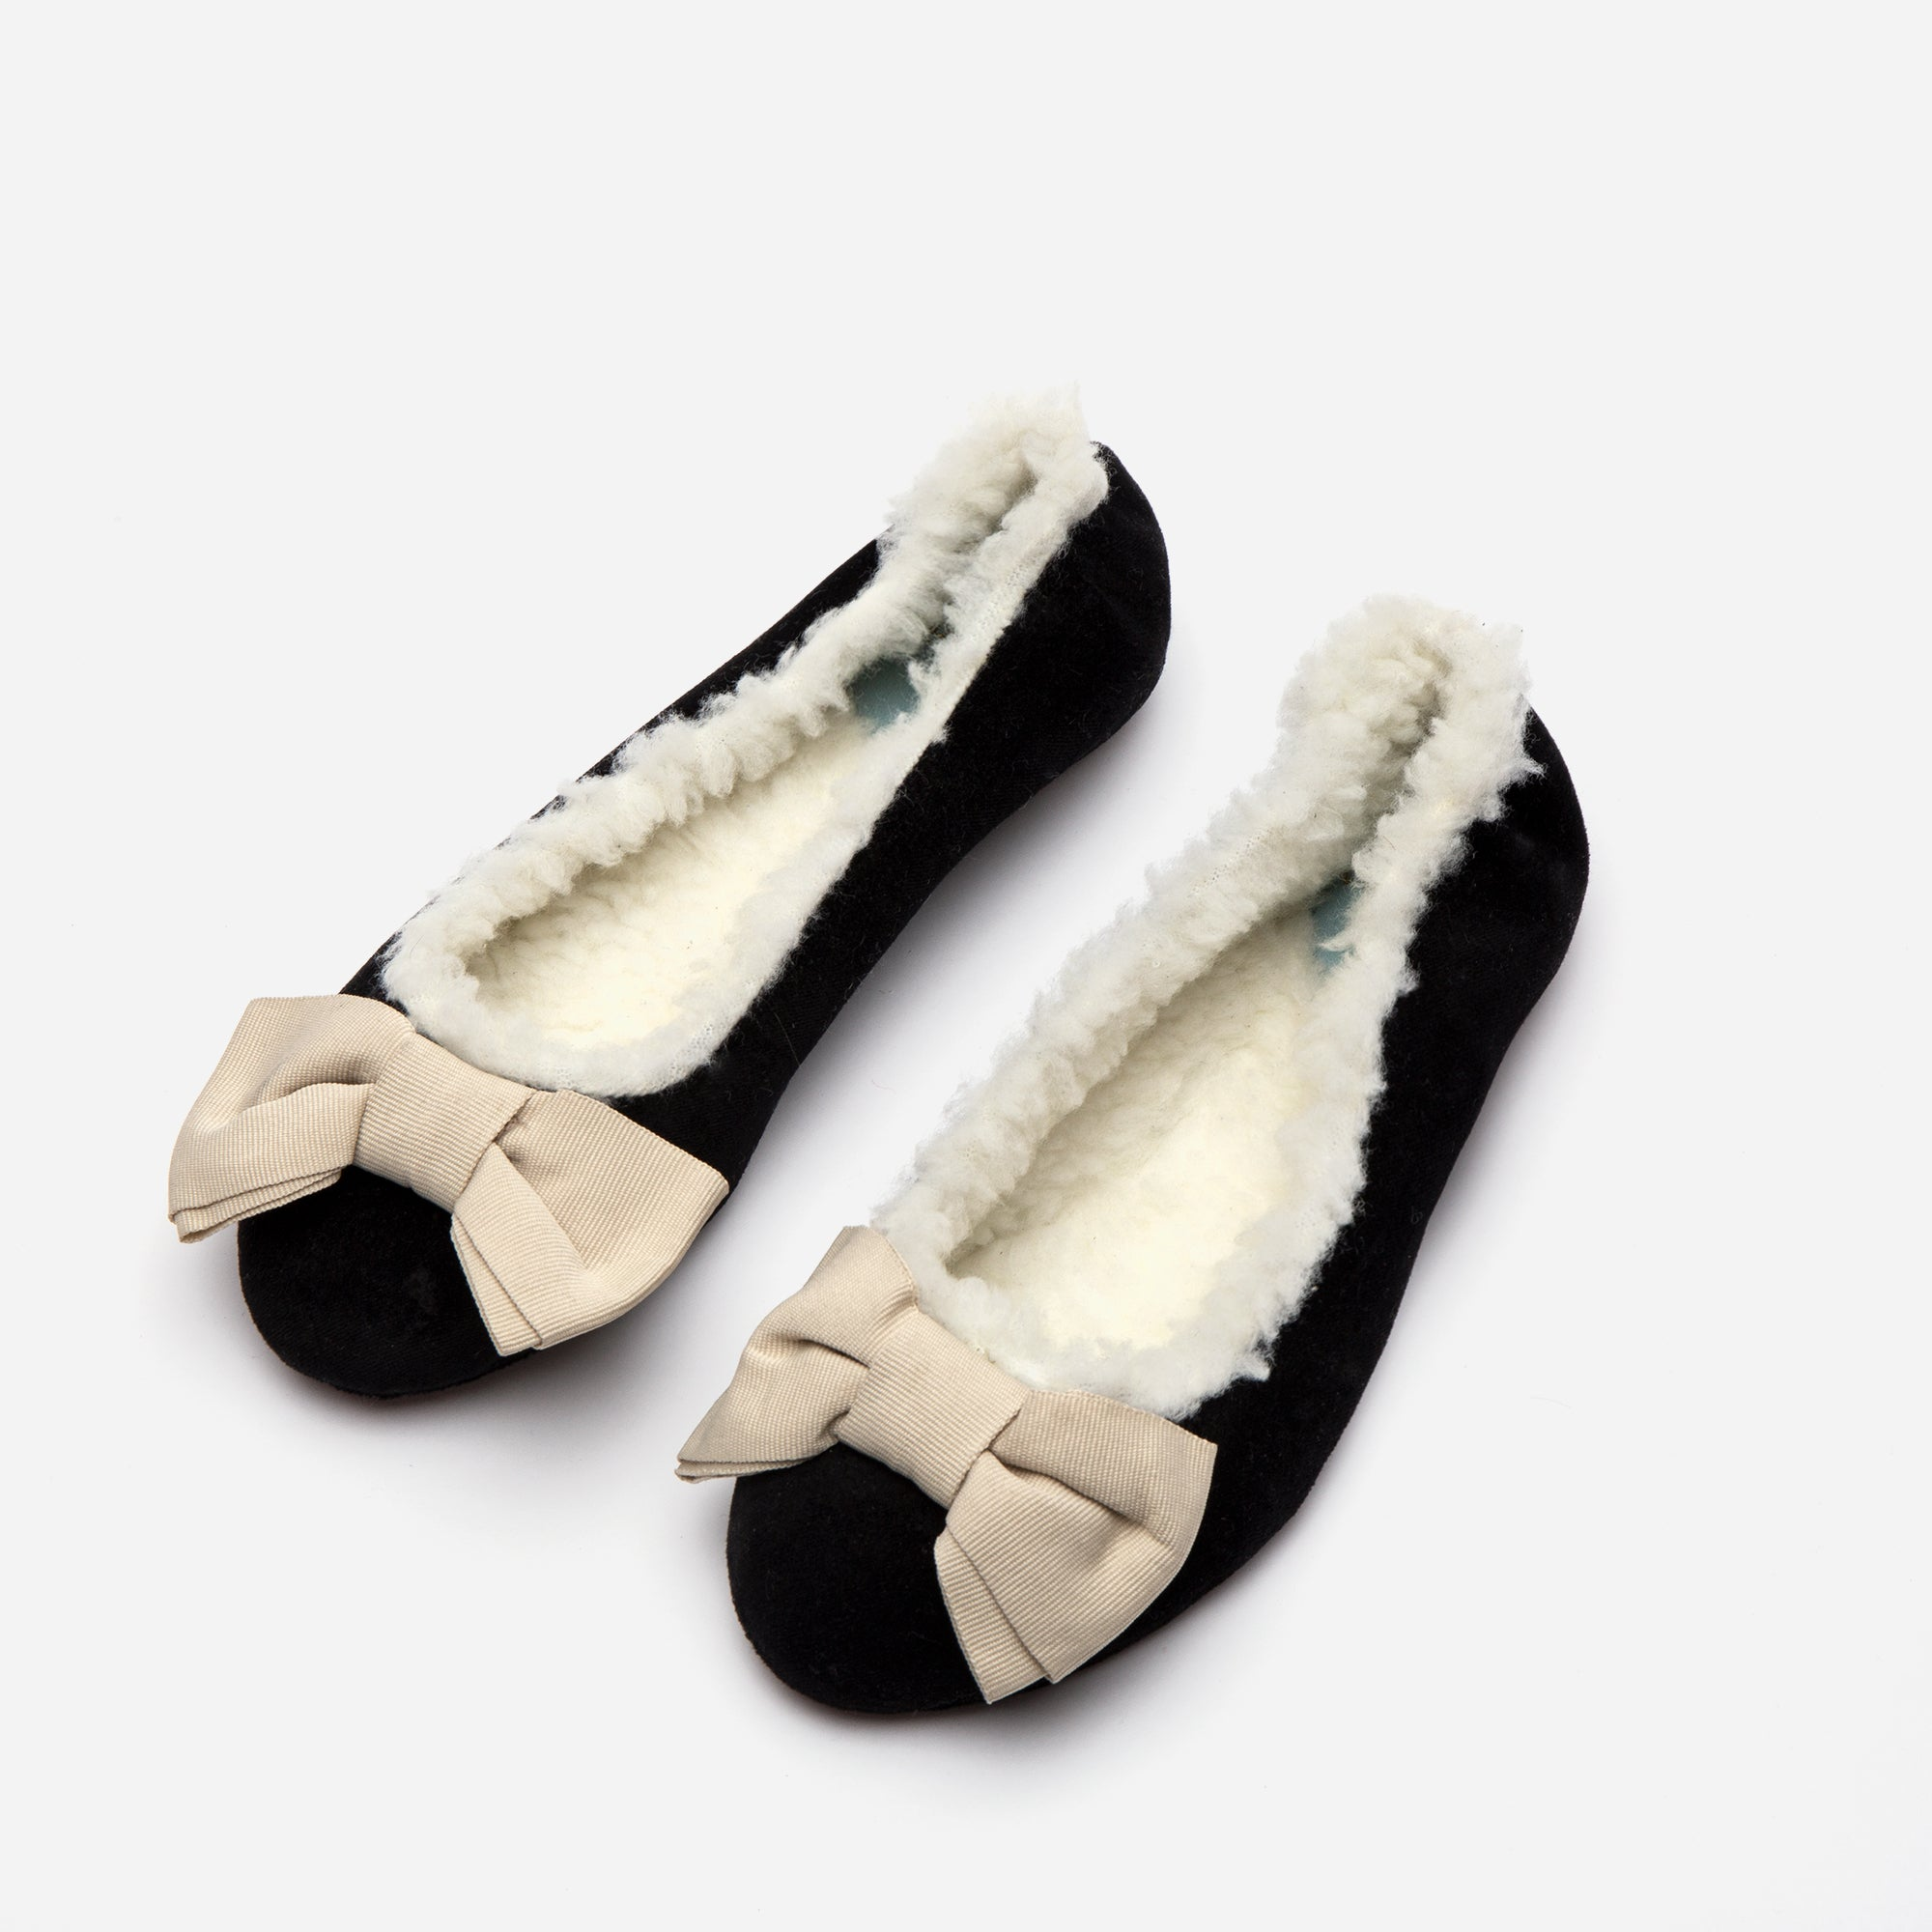 Velvet Shearling Slippers Black Oyster